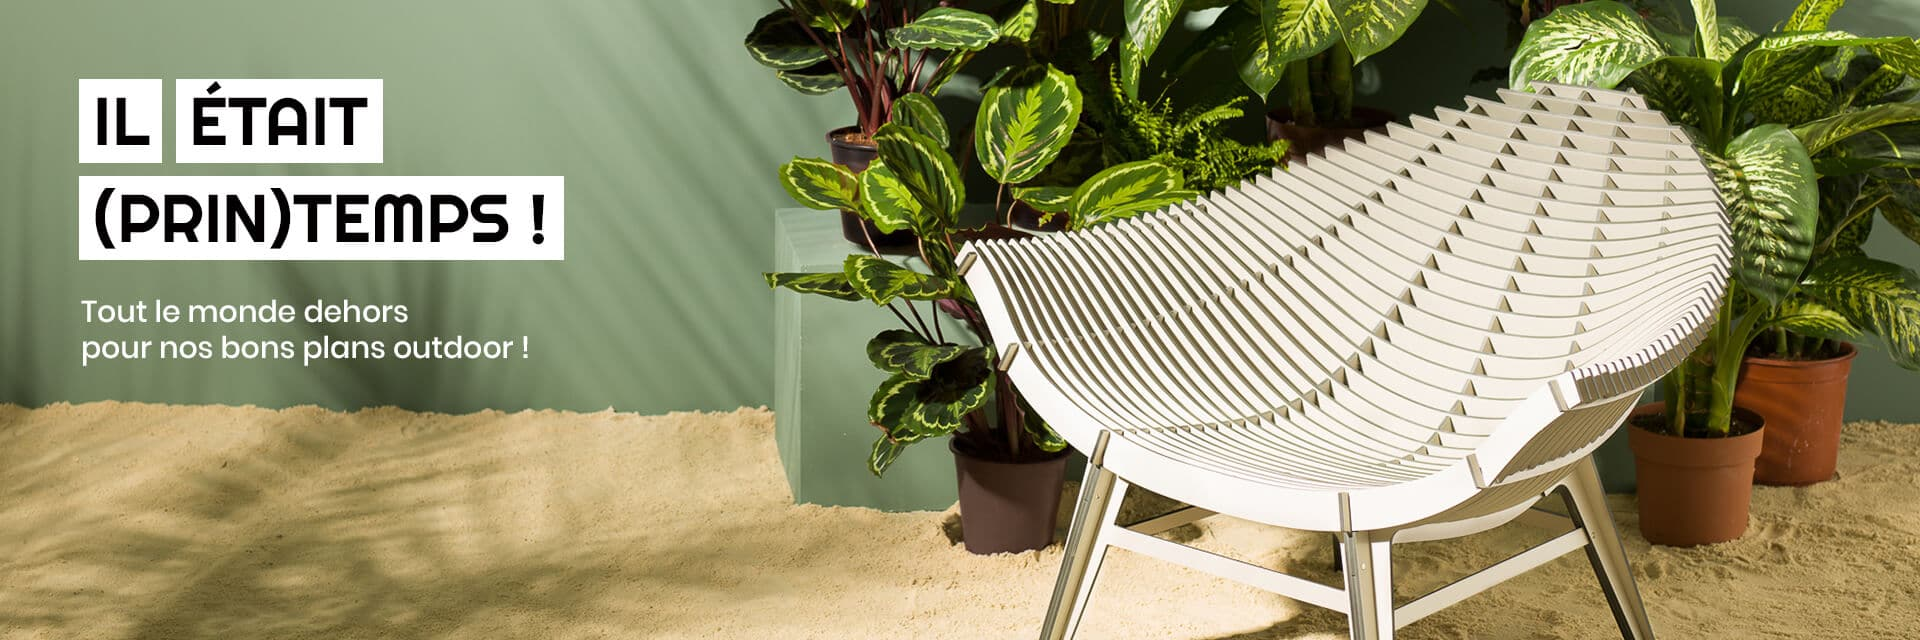 outdoor printemps zeeloft ibride fauteuil manta